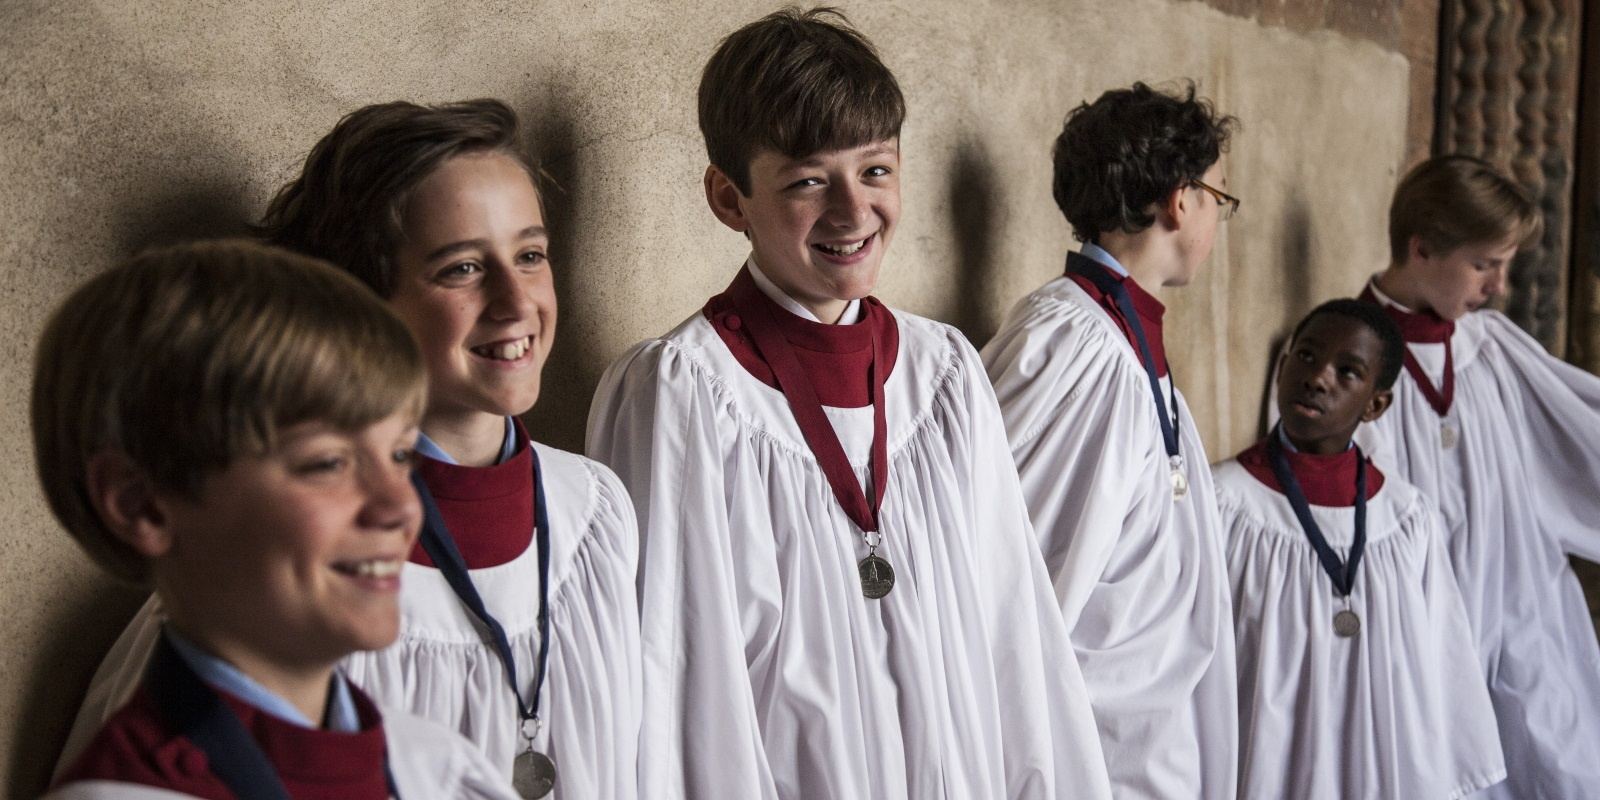 Cathedral Choristers - Fully Dressed.jpg